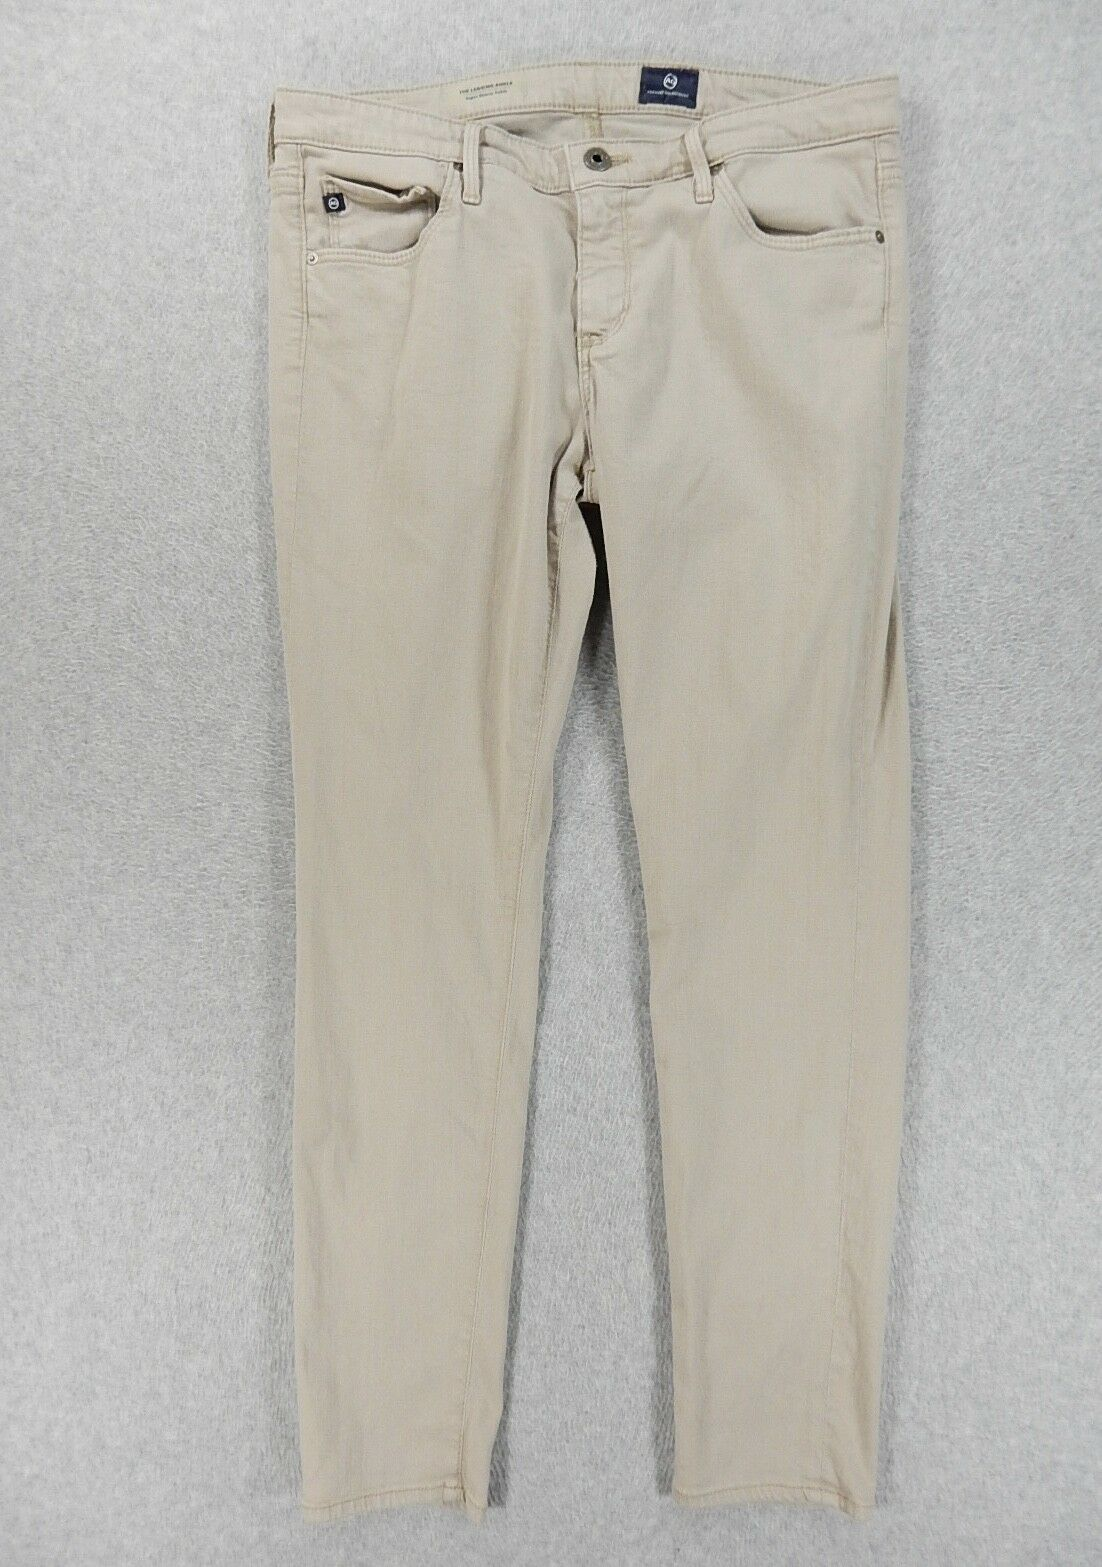 Adriano goldschmied THE LEGGING Super Skinny Ankle Jeans (Womens 30R) Tan